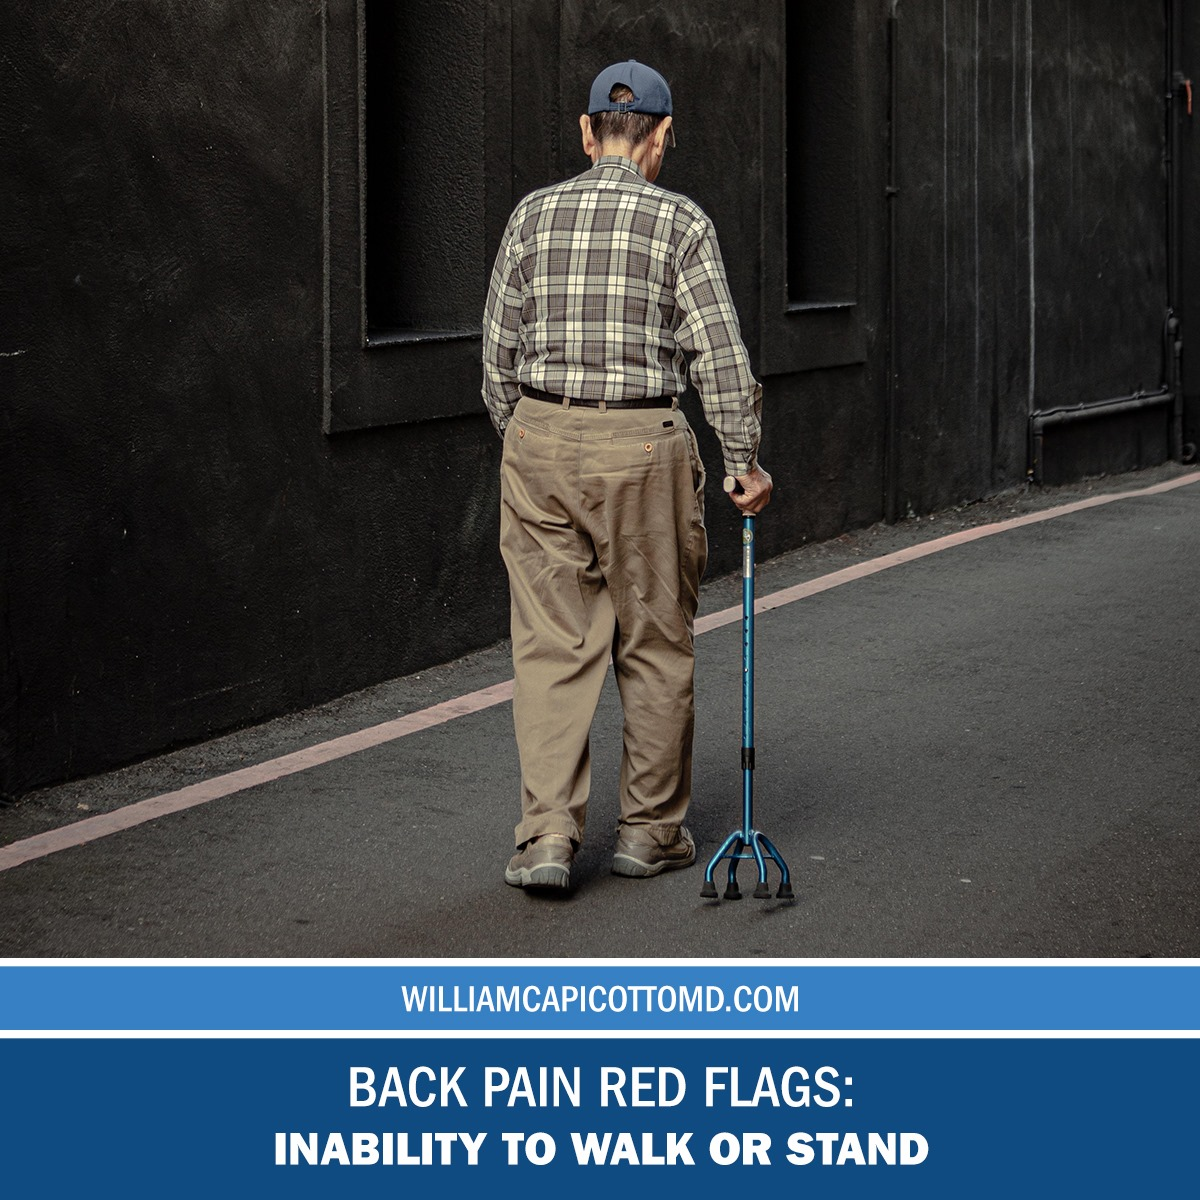 Back Pain Red Flags: Inability to Walk or Stand